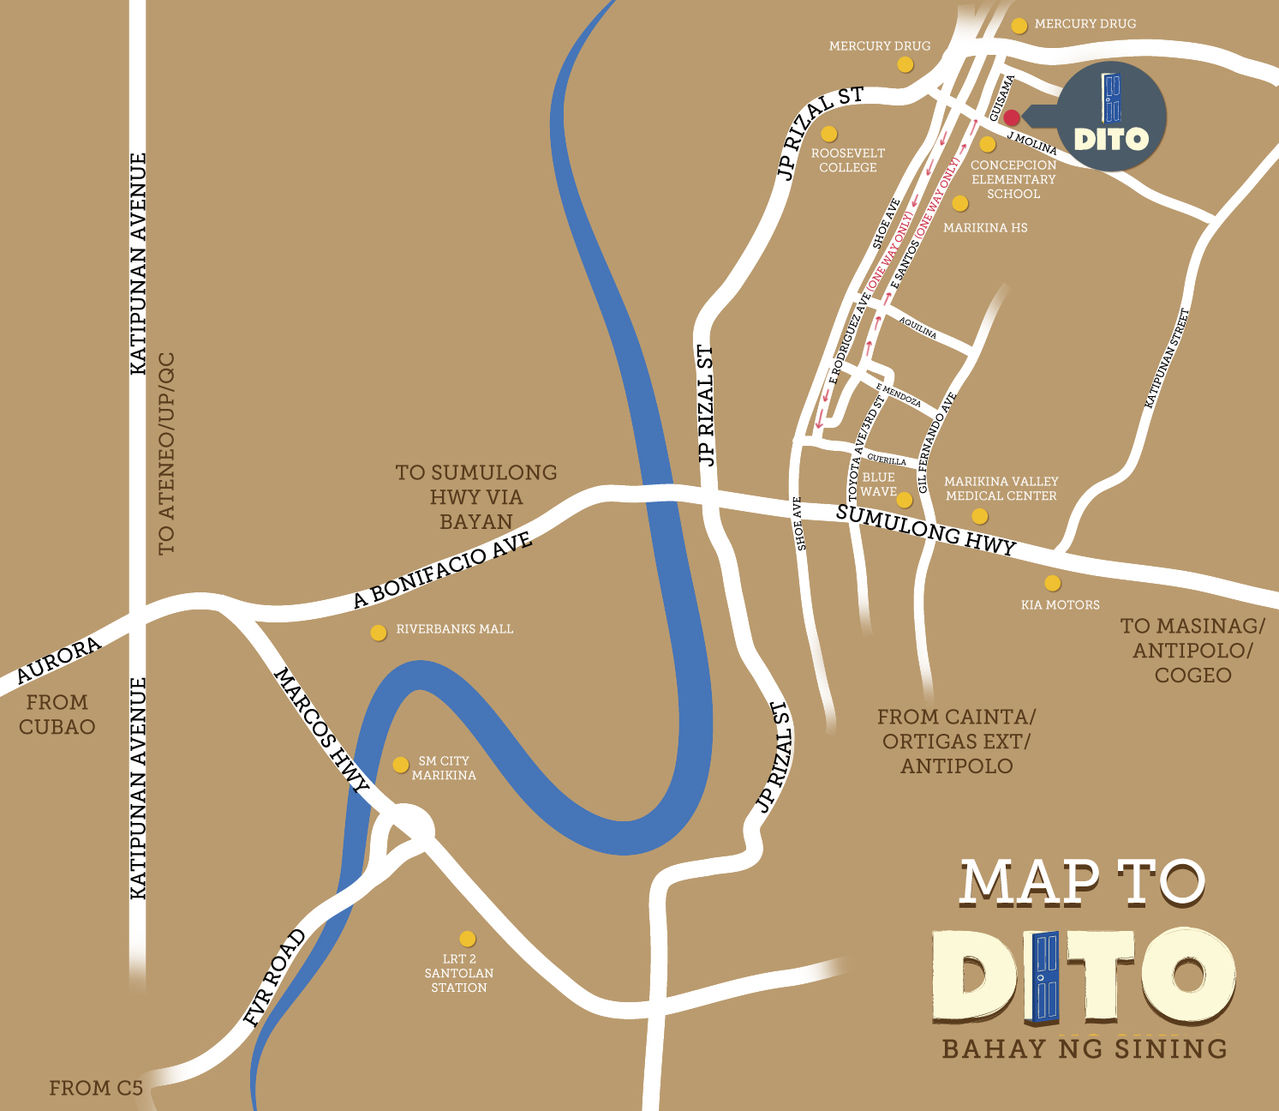 DITO: Bahay ng Sining Page Liked · September 24, 2013 · Edited · · Download a higher resolution version of the map here: http://s21.postimg.org/ugpy6ryvr/Map.jpg